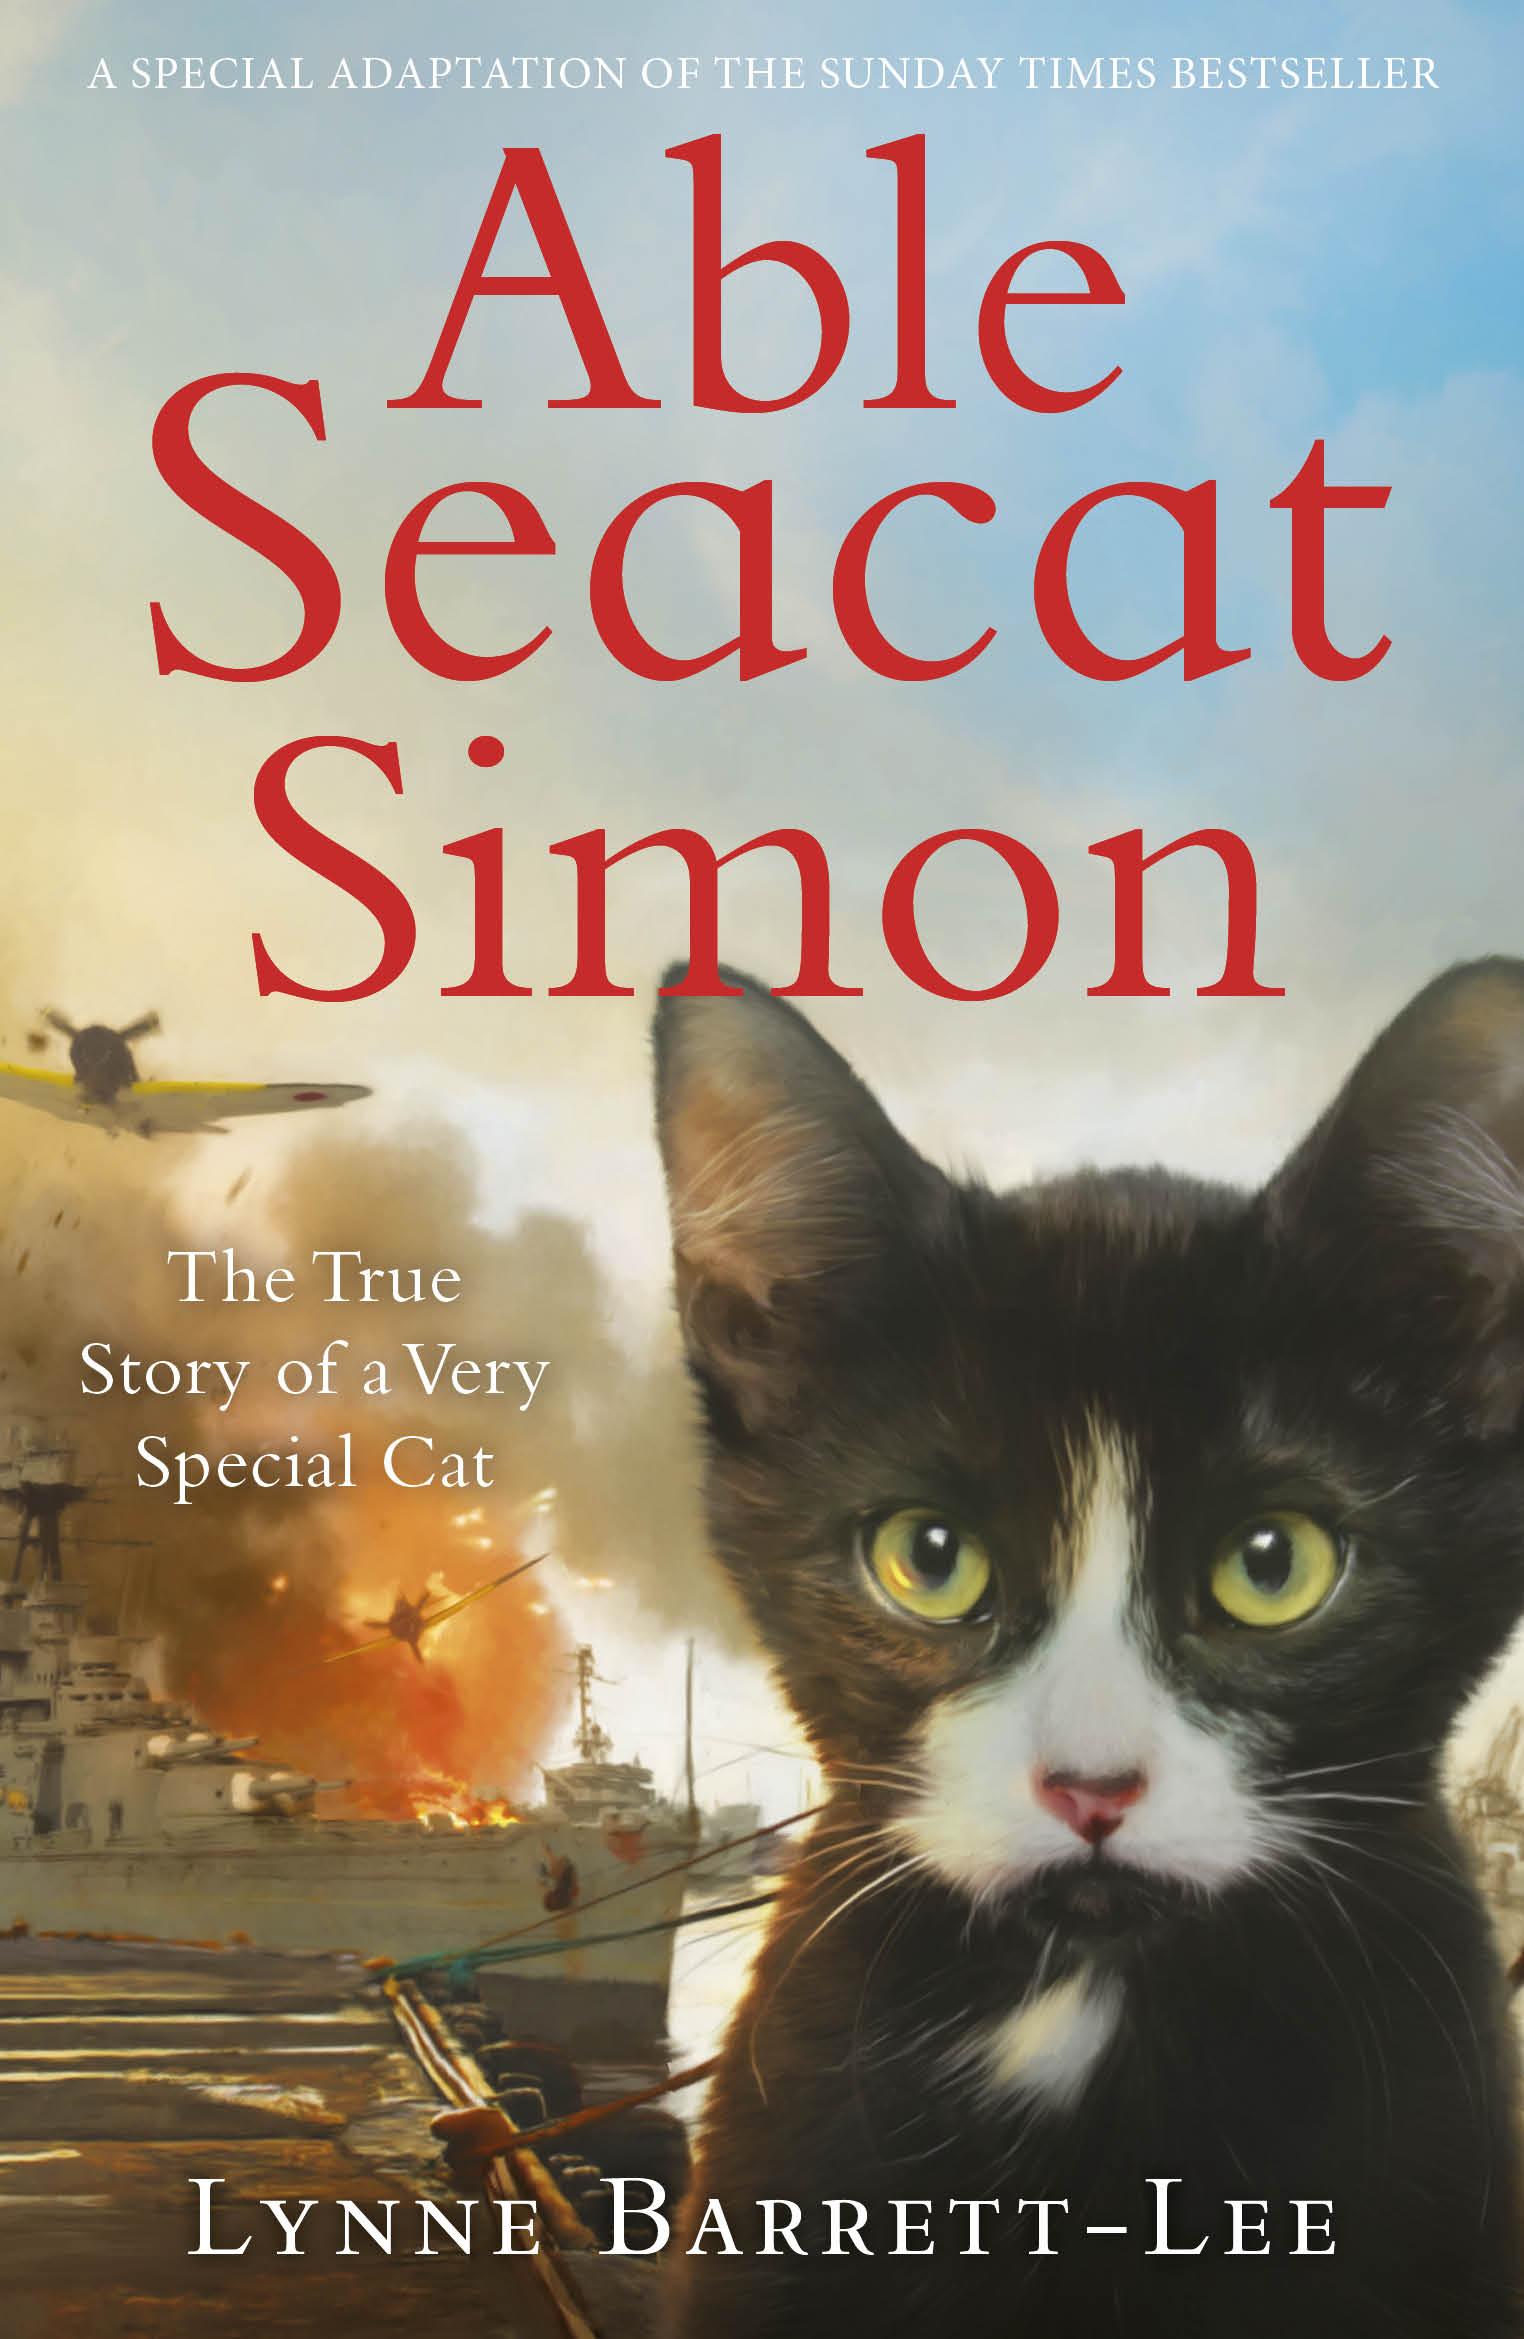 Able Seacat Simon – the true story of a very special cat